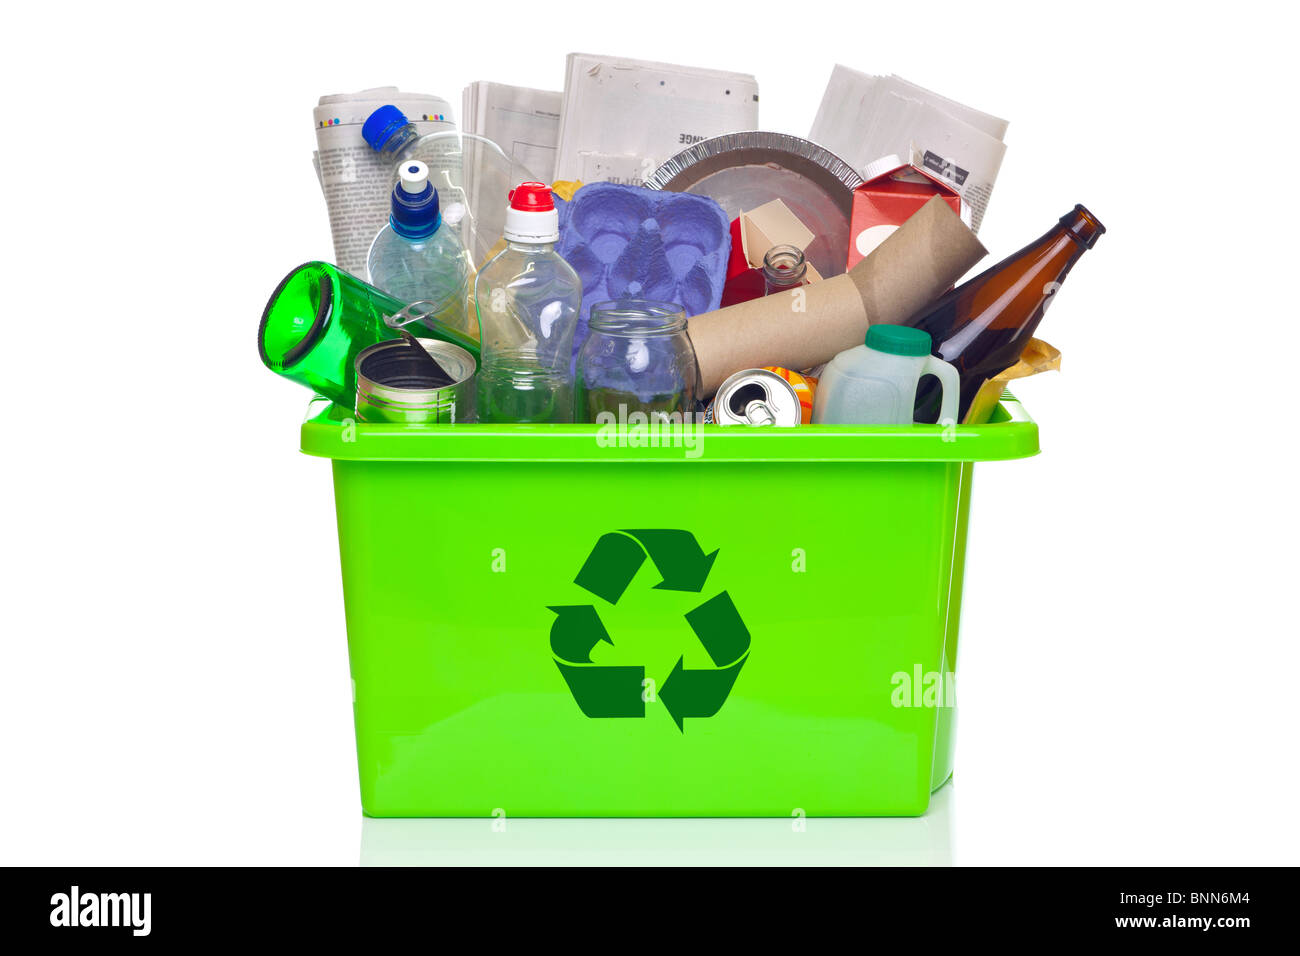 Photo of a green recycling bin full of recyclable items isolated on a white background. - Stock Image